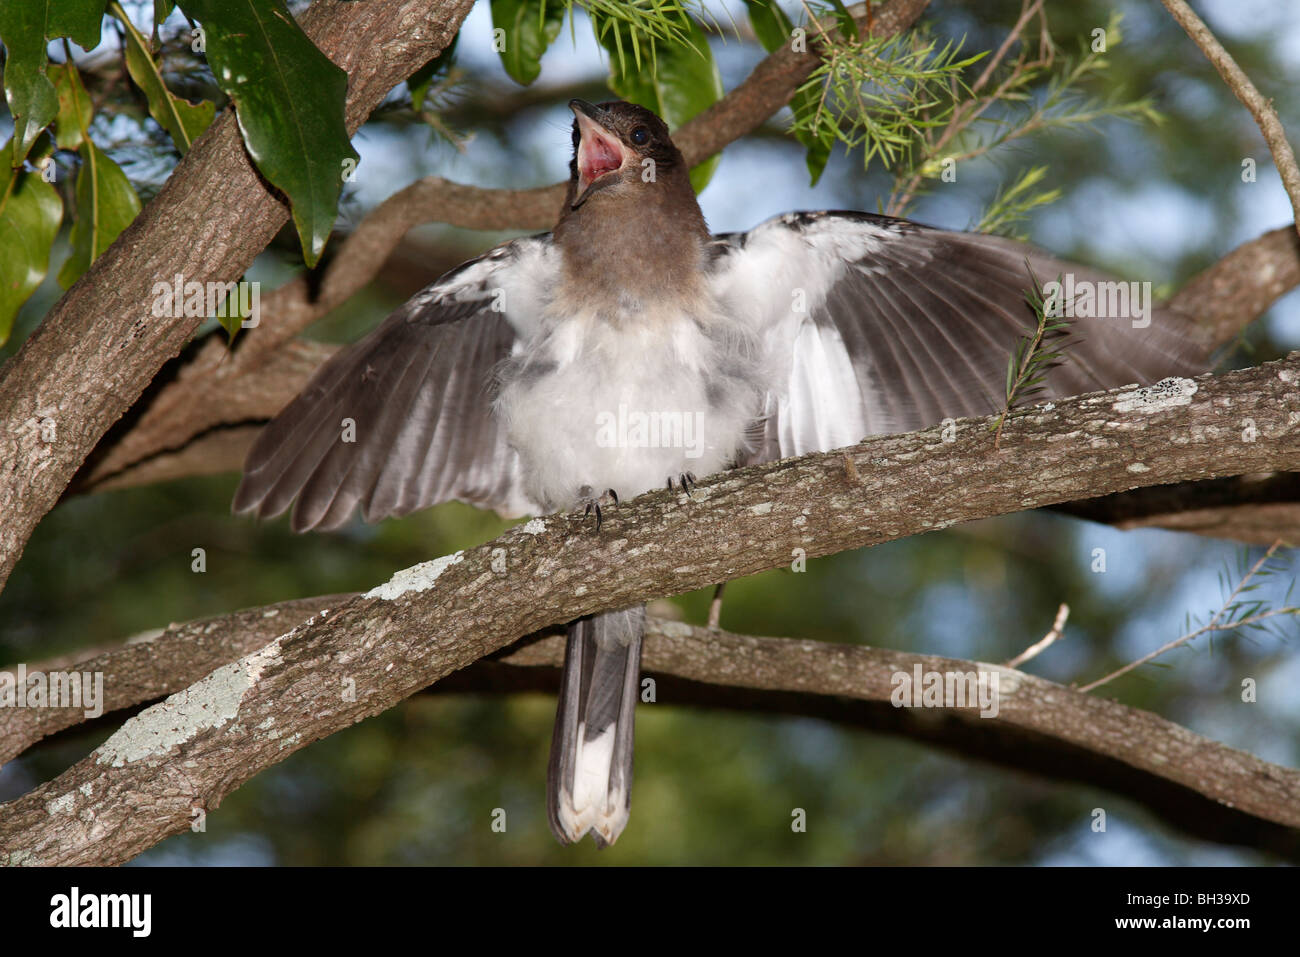 Juvenile Pied Butcherbird, or Black Headed Butcherbird, Cracticus nigrogularis, with wings open, calling for food - Stock Image